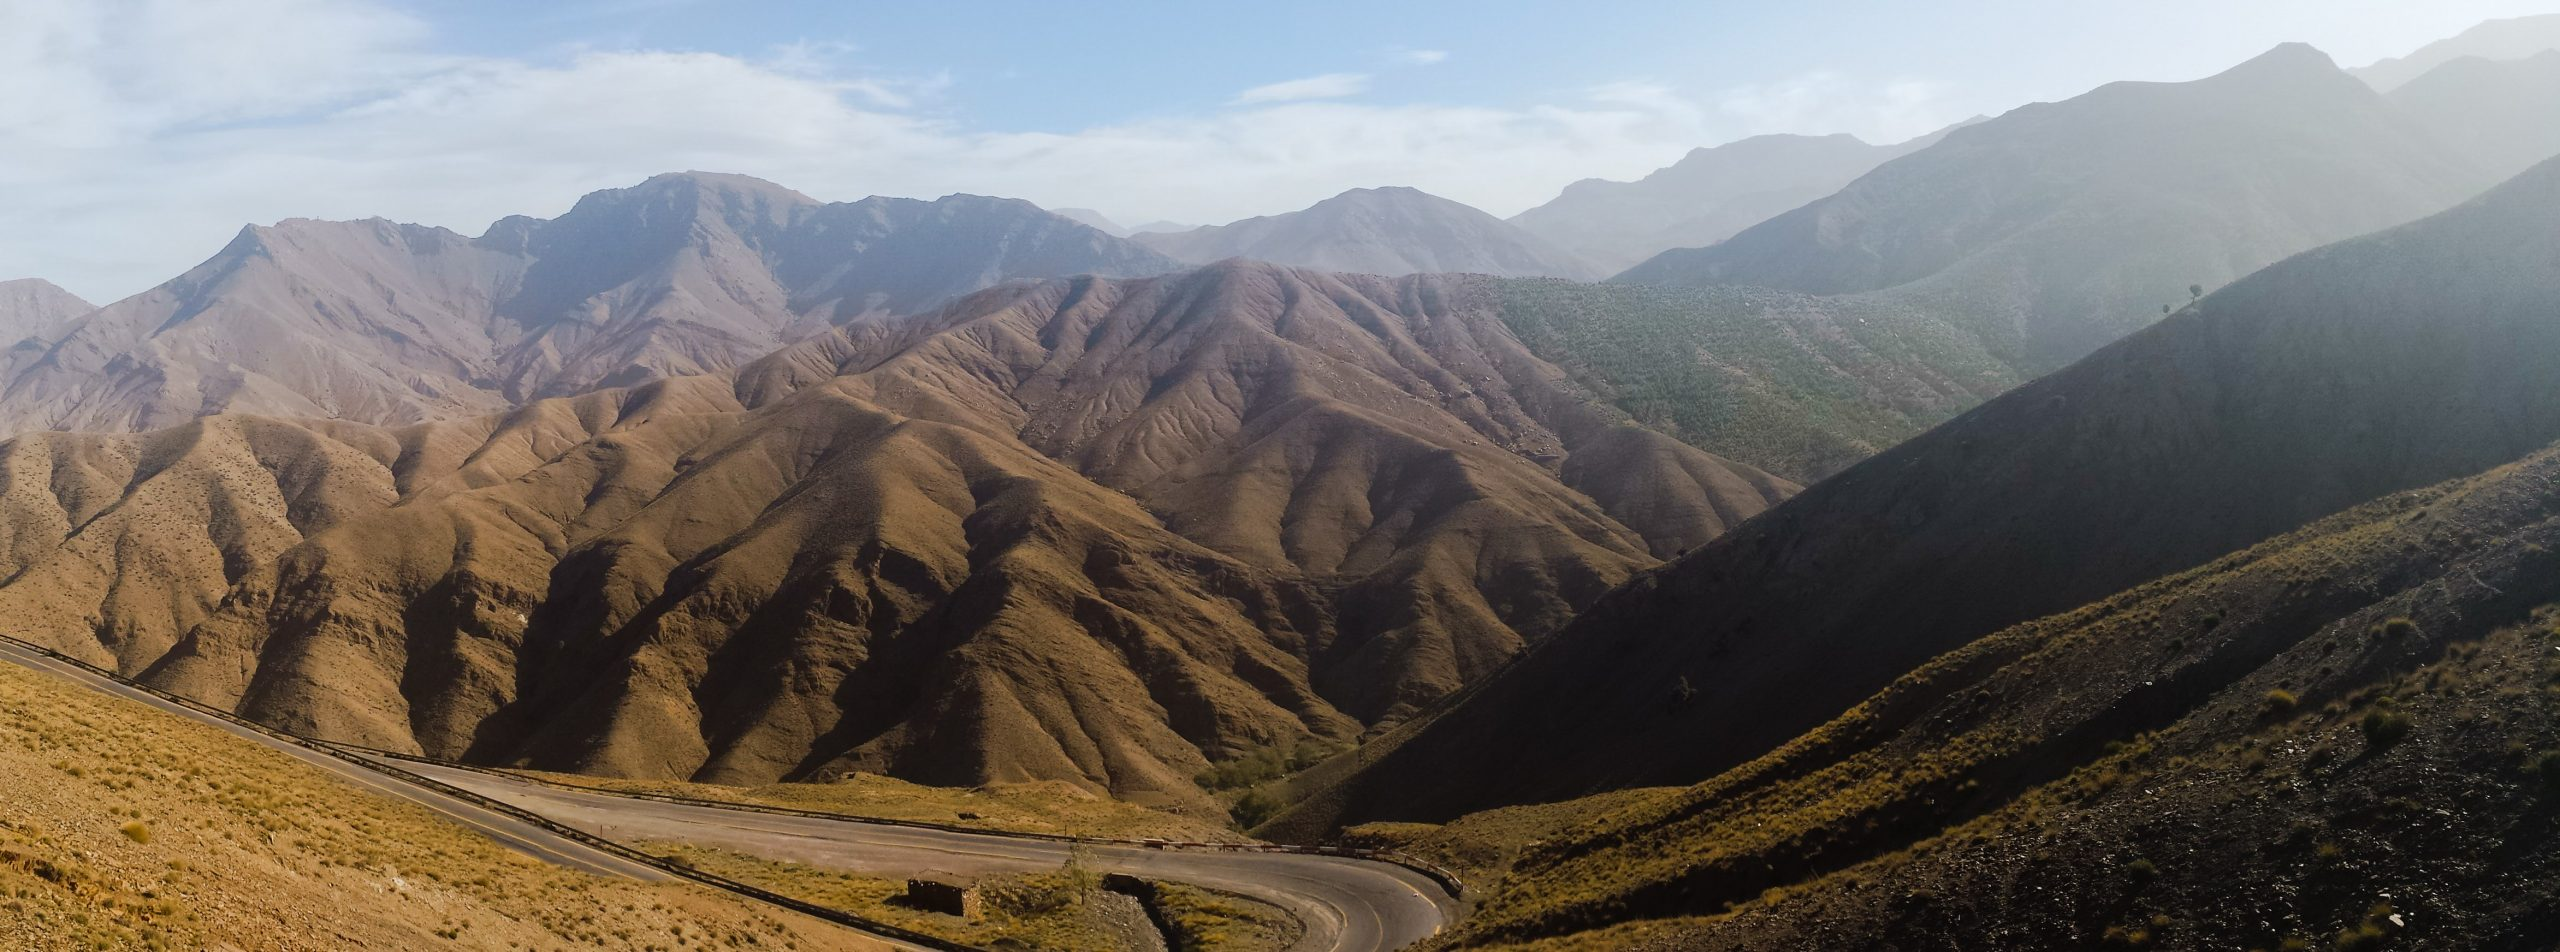 Facts about the Atlas Mountains scaled